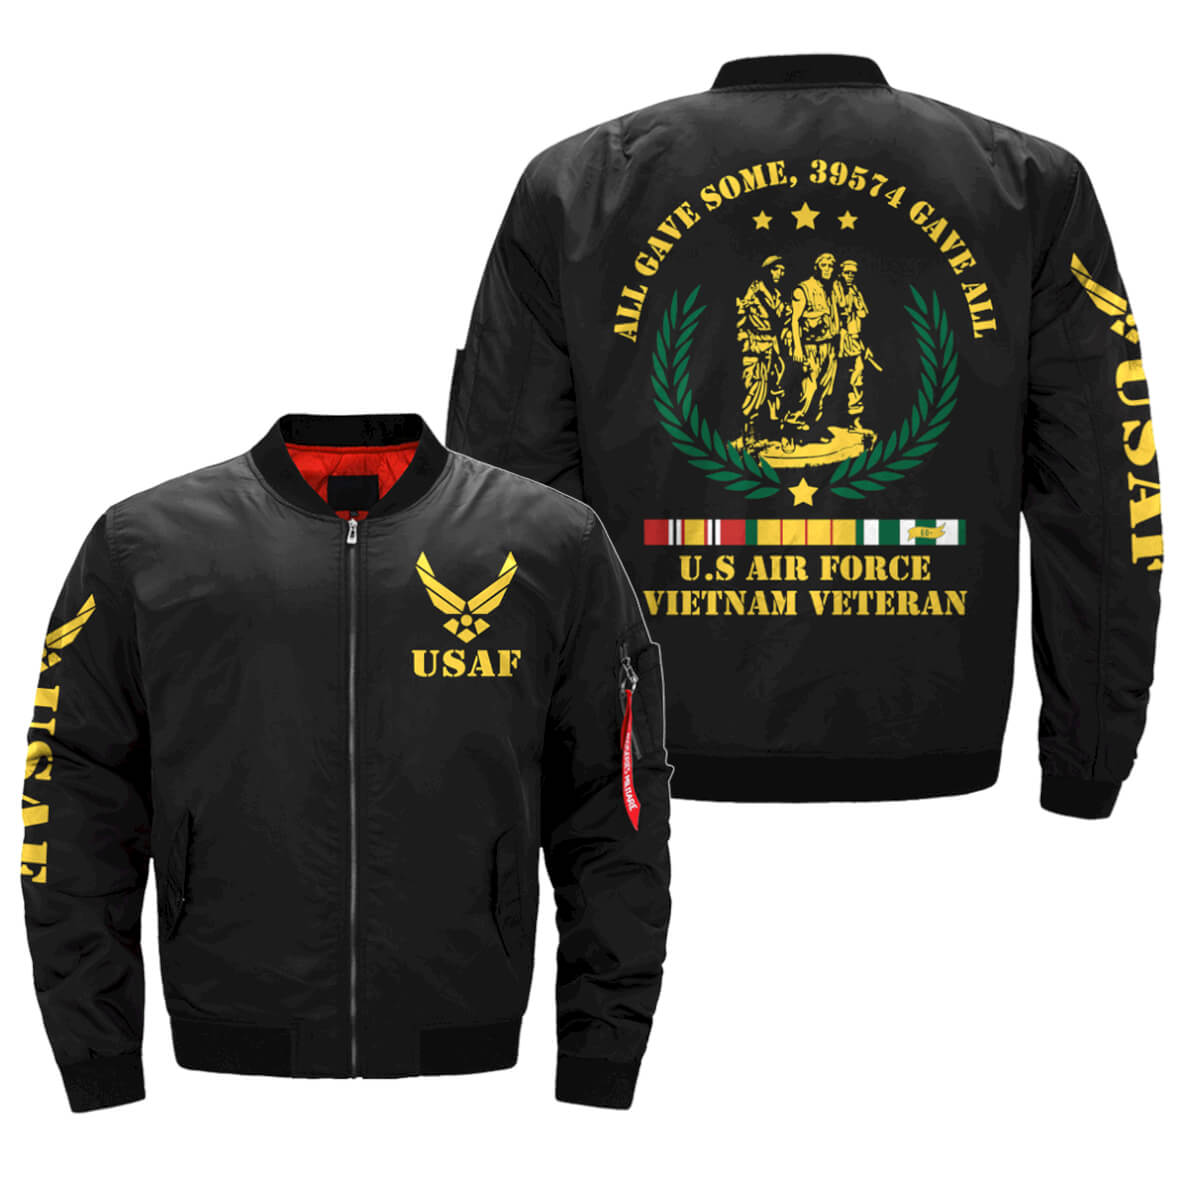 All Gave Some 39574 Gave All VietNam Veteran Printful 3D Bomber Jacket Bomber Jacket Size S-5XL